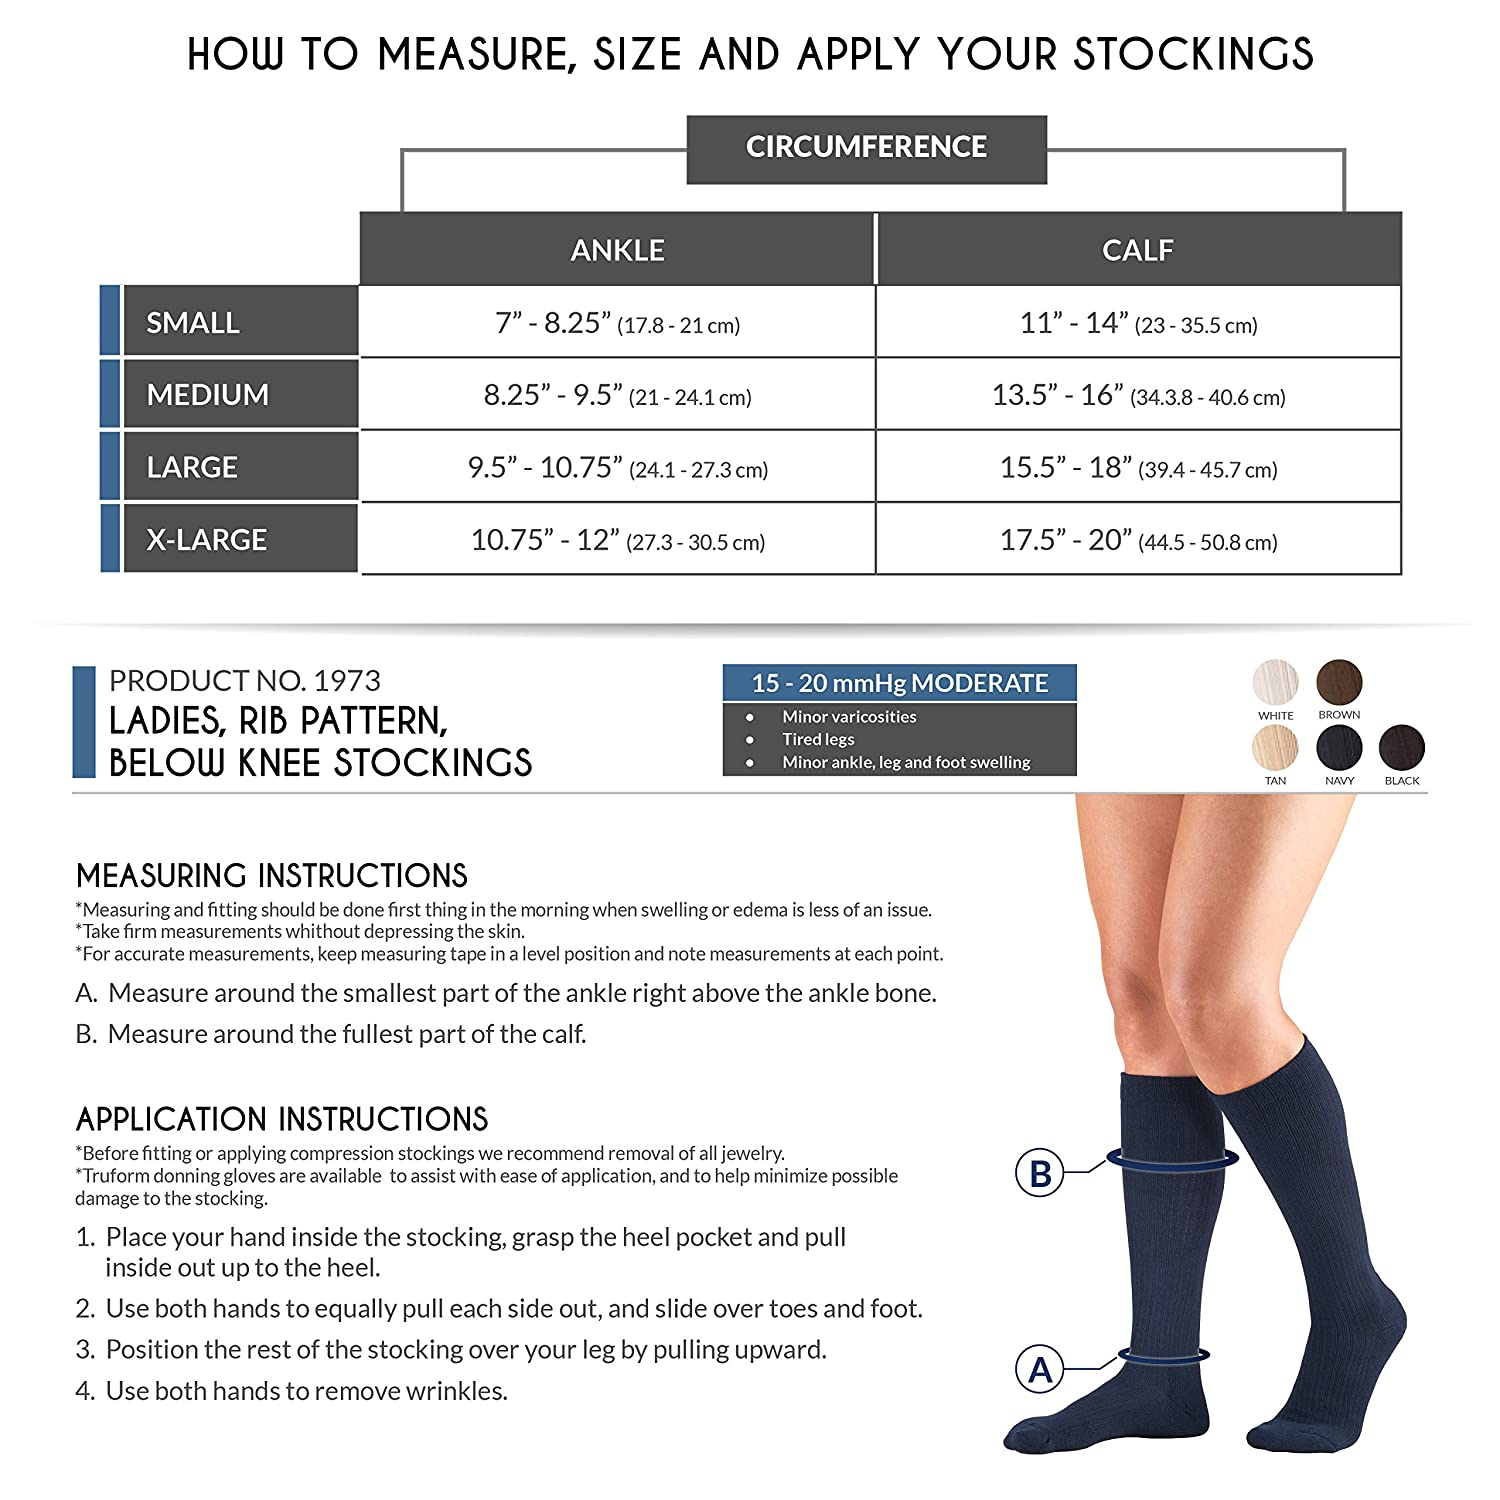 Amazon.com: Truform Compression for Women 15-20 mmHg Socks Brown Rib Pattern, Large, 2 Count: Health & Personal Care